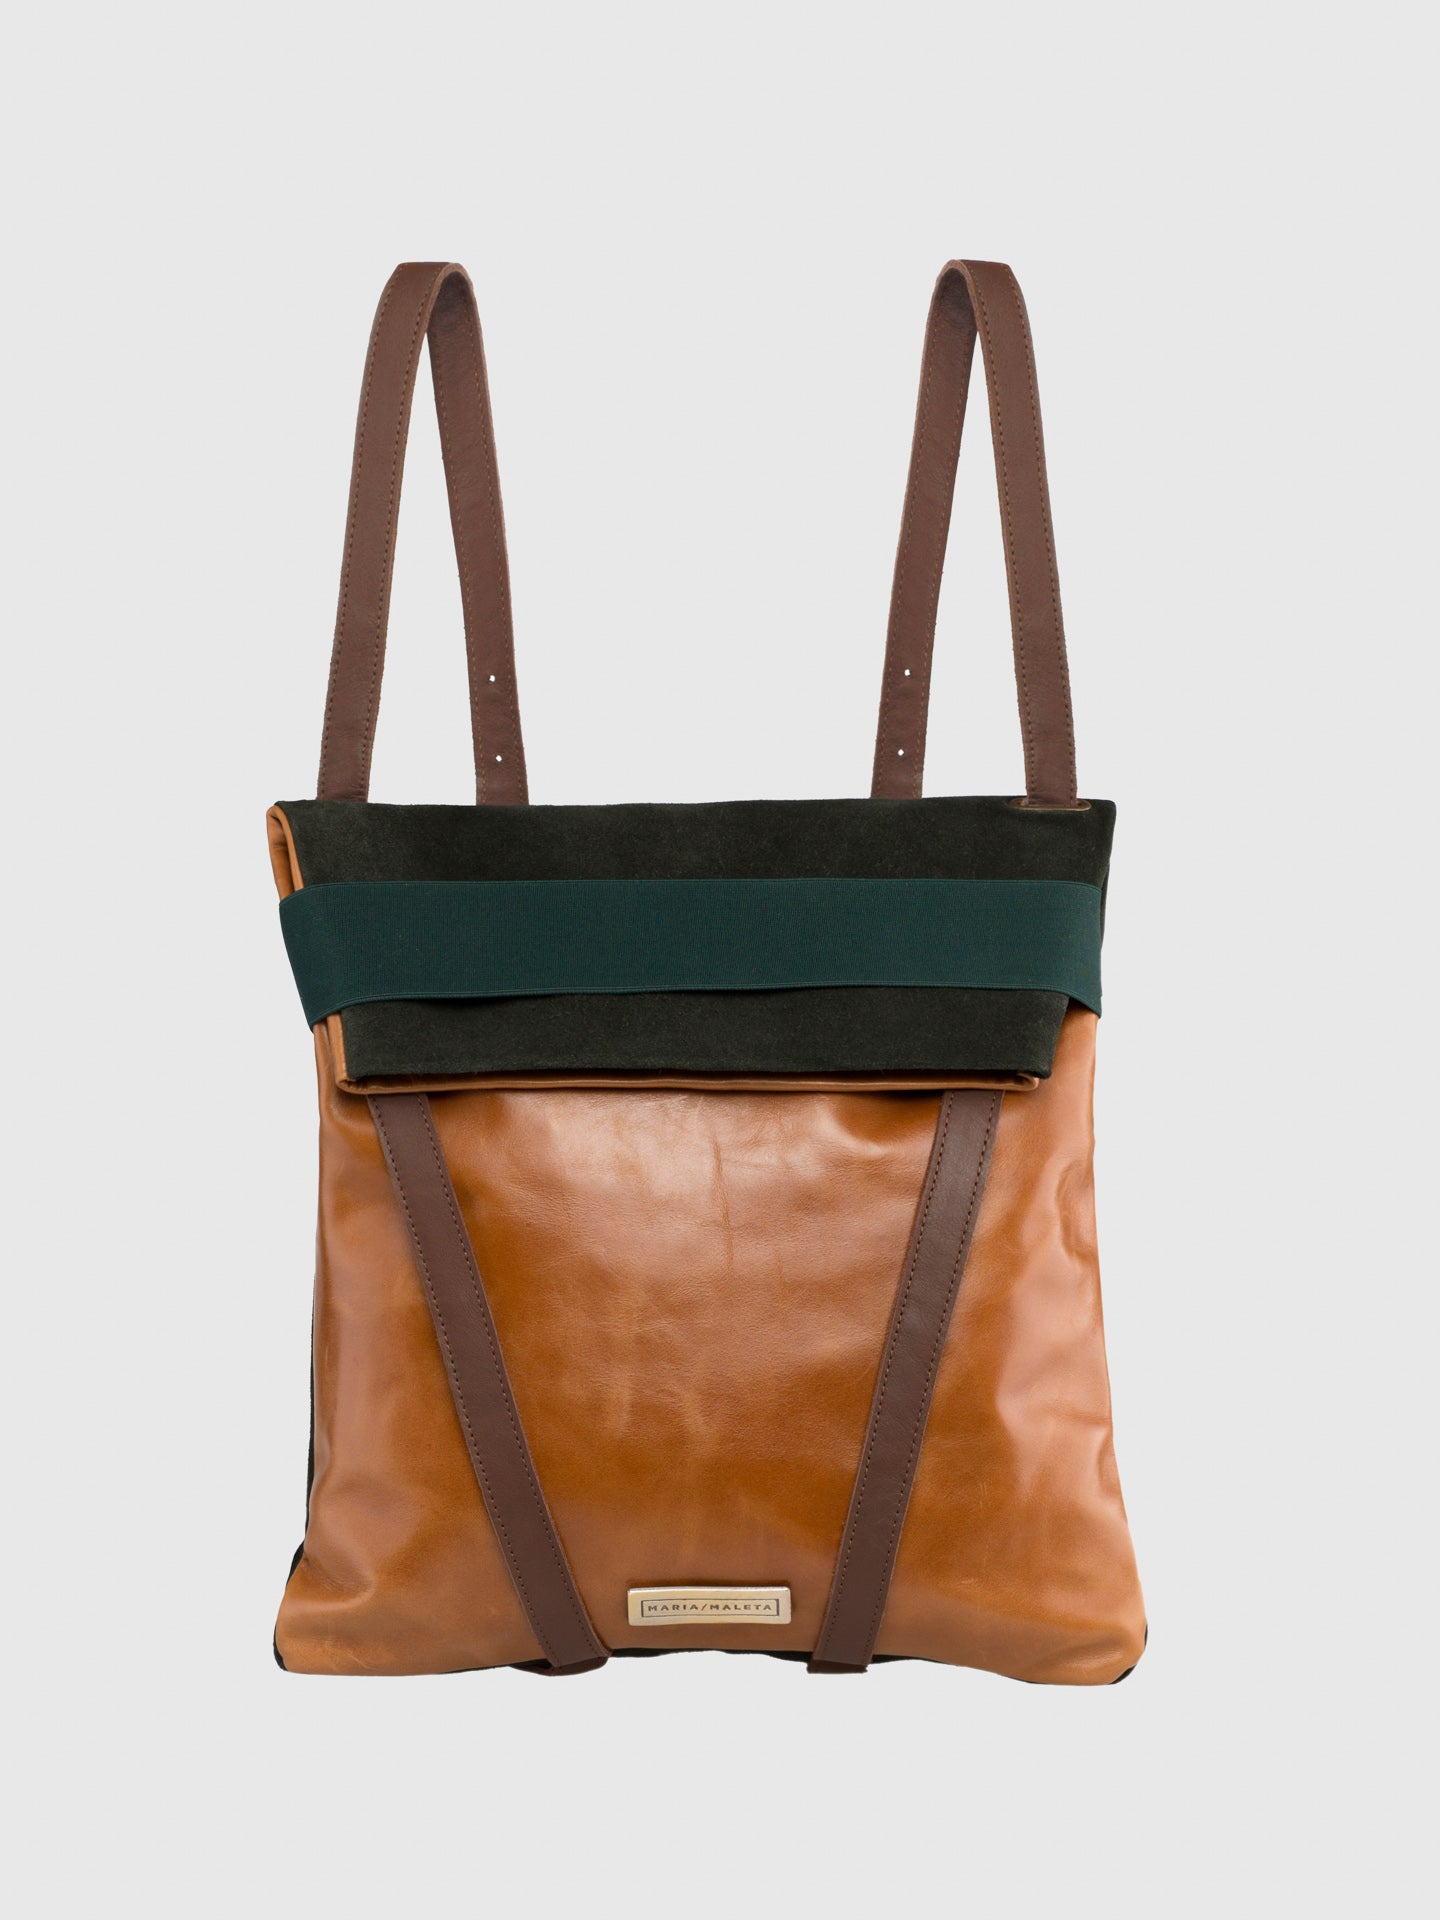 Maria Maleta Brown and Green Reversible Backpack